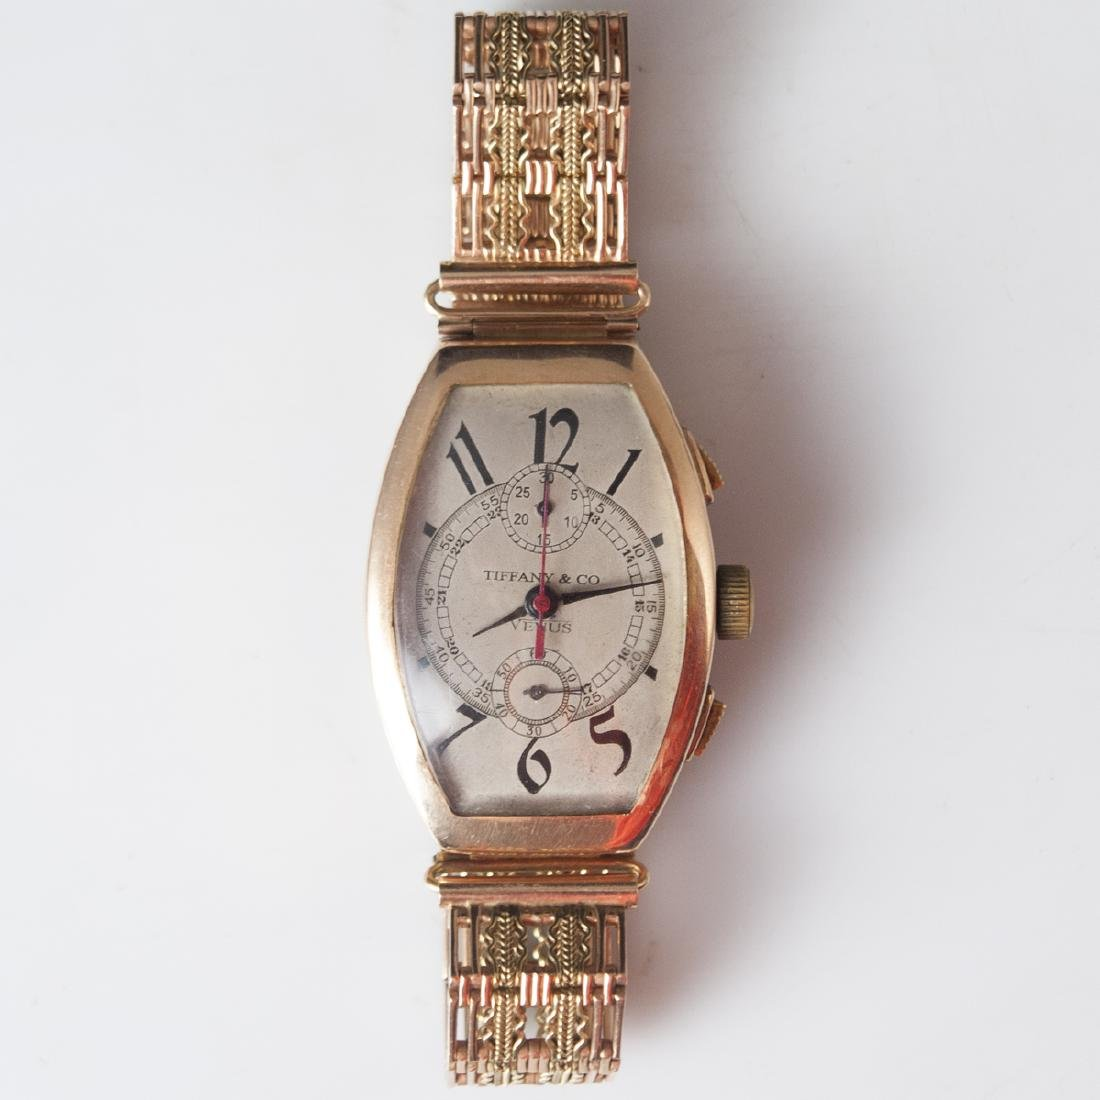 "Antique Tiffany & Co. ""Venus"" 14kt Rose Gold Watch"